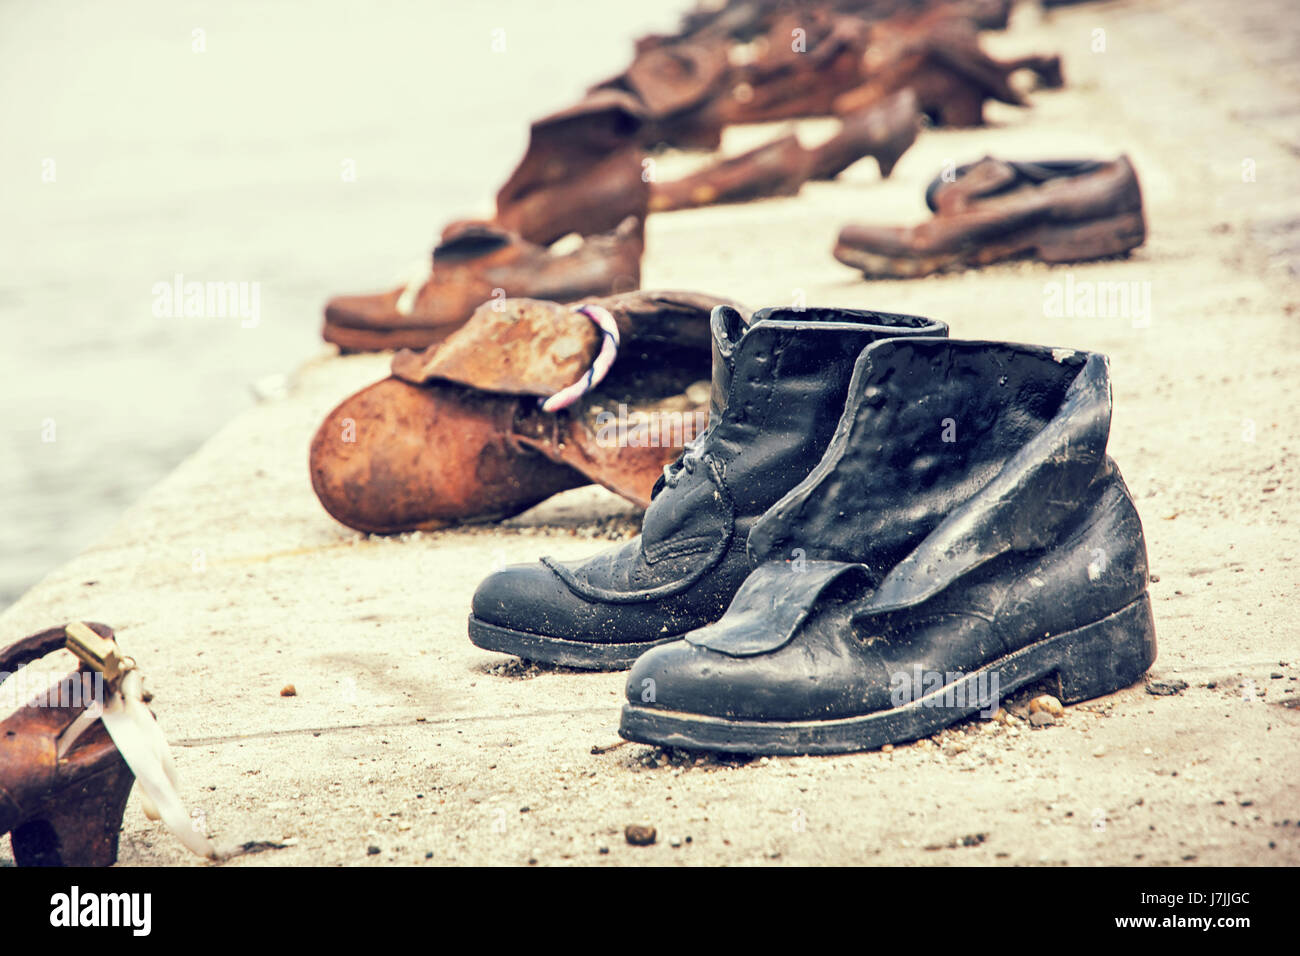 Shoes monument on the Danube bank is a memorial in Budapest, Hungary. Retro photo filter. Symbolic artistic object. - Stock Image